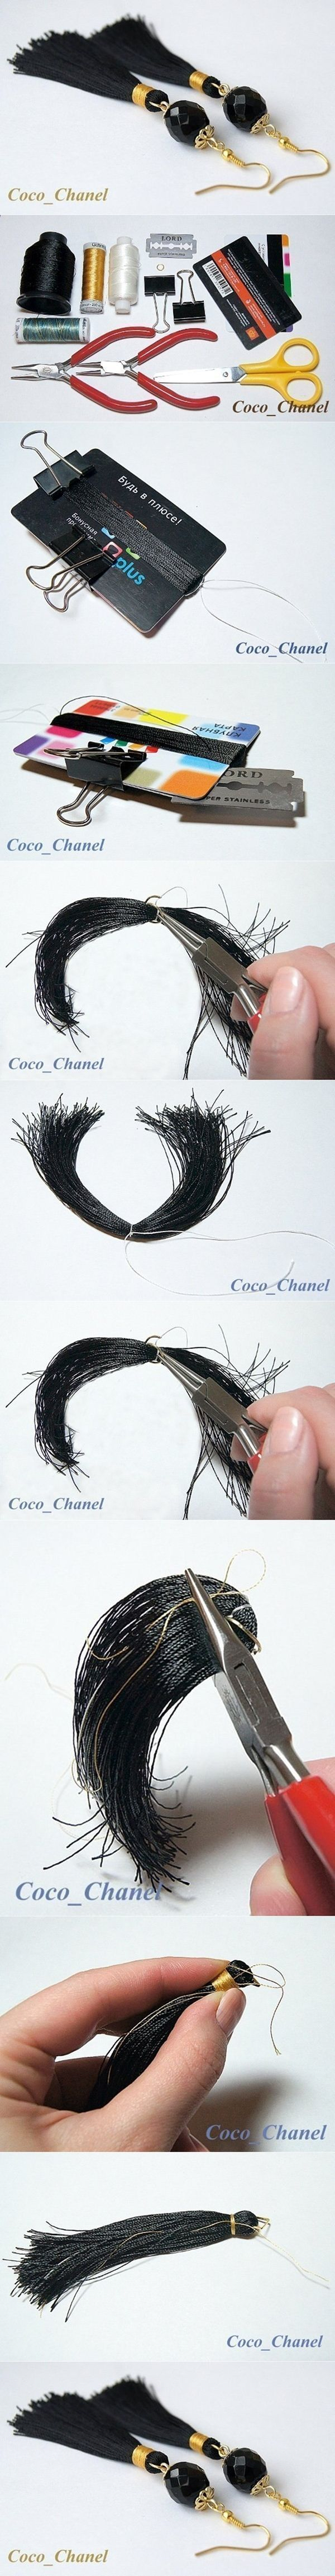 fringe earring tutorial:                                                                                                                                                                                 More